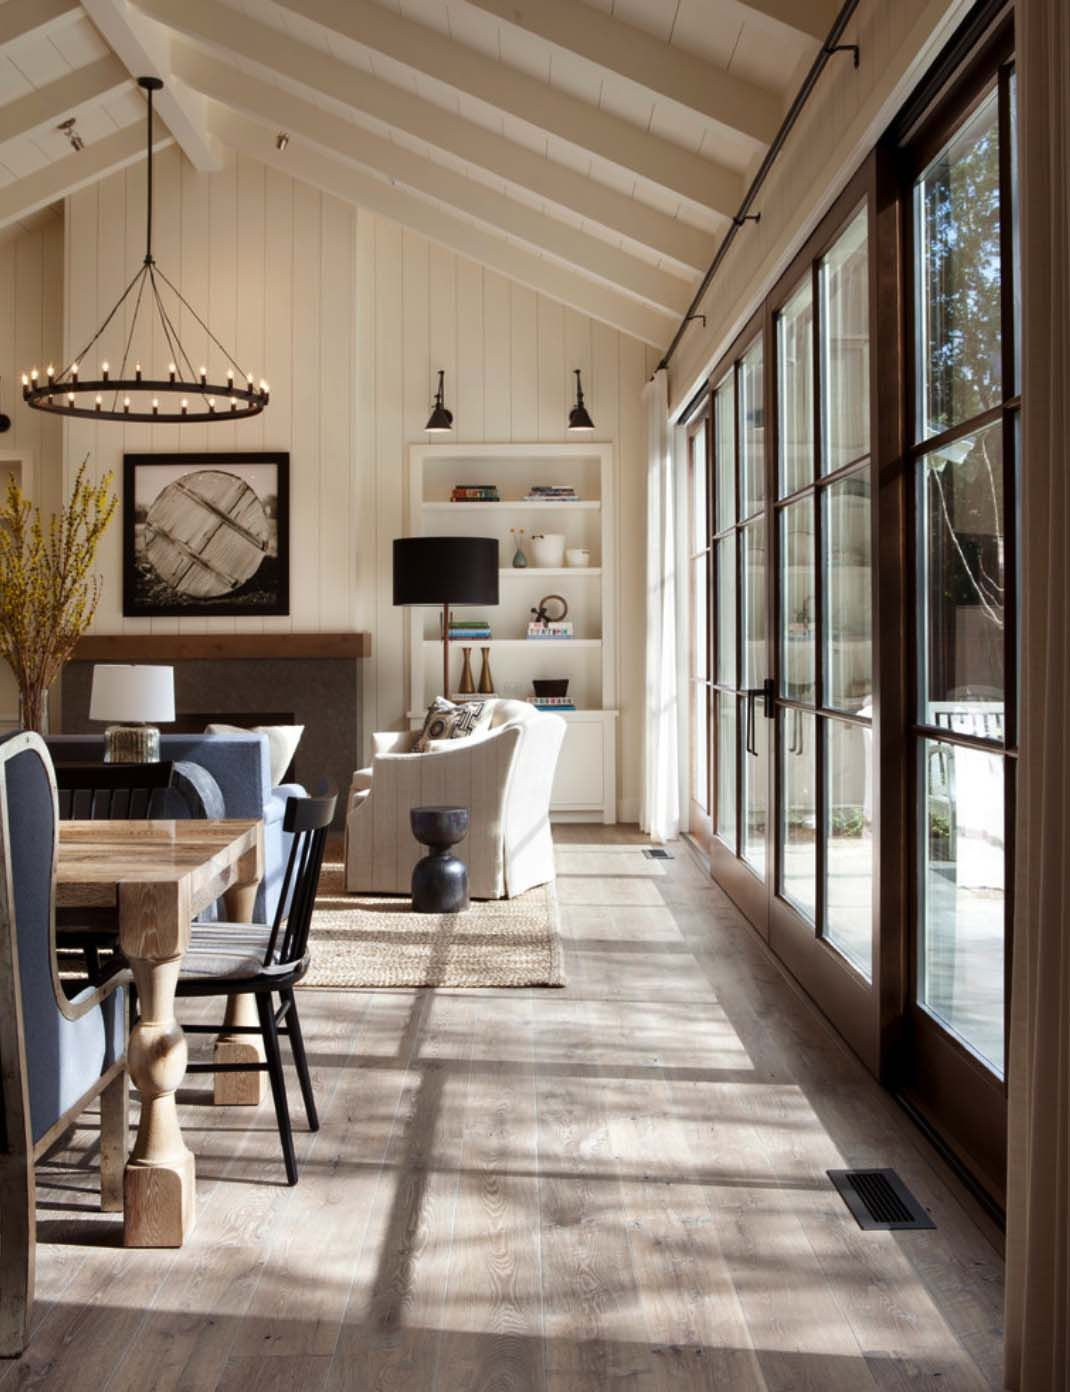 Photo of Rustic-chic farmhouse style dwelling in Northern California